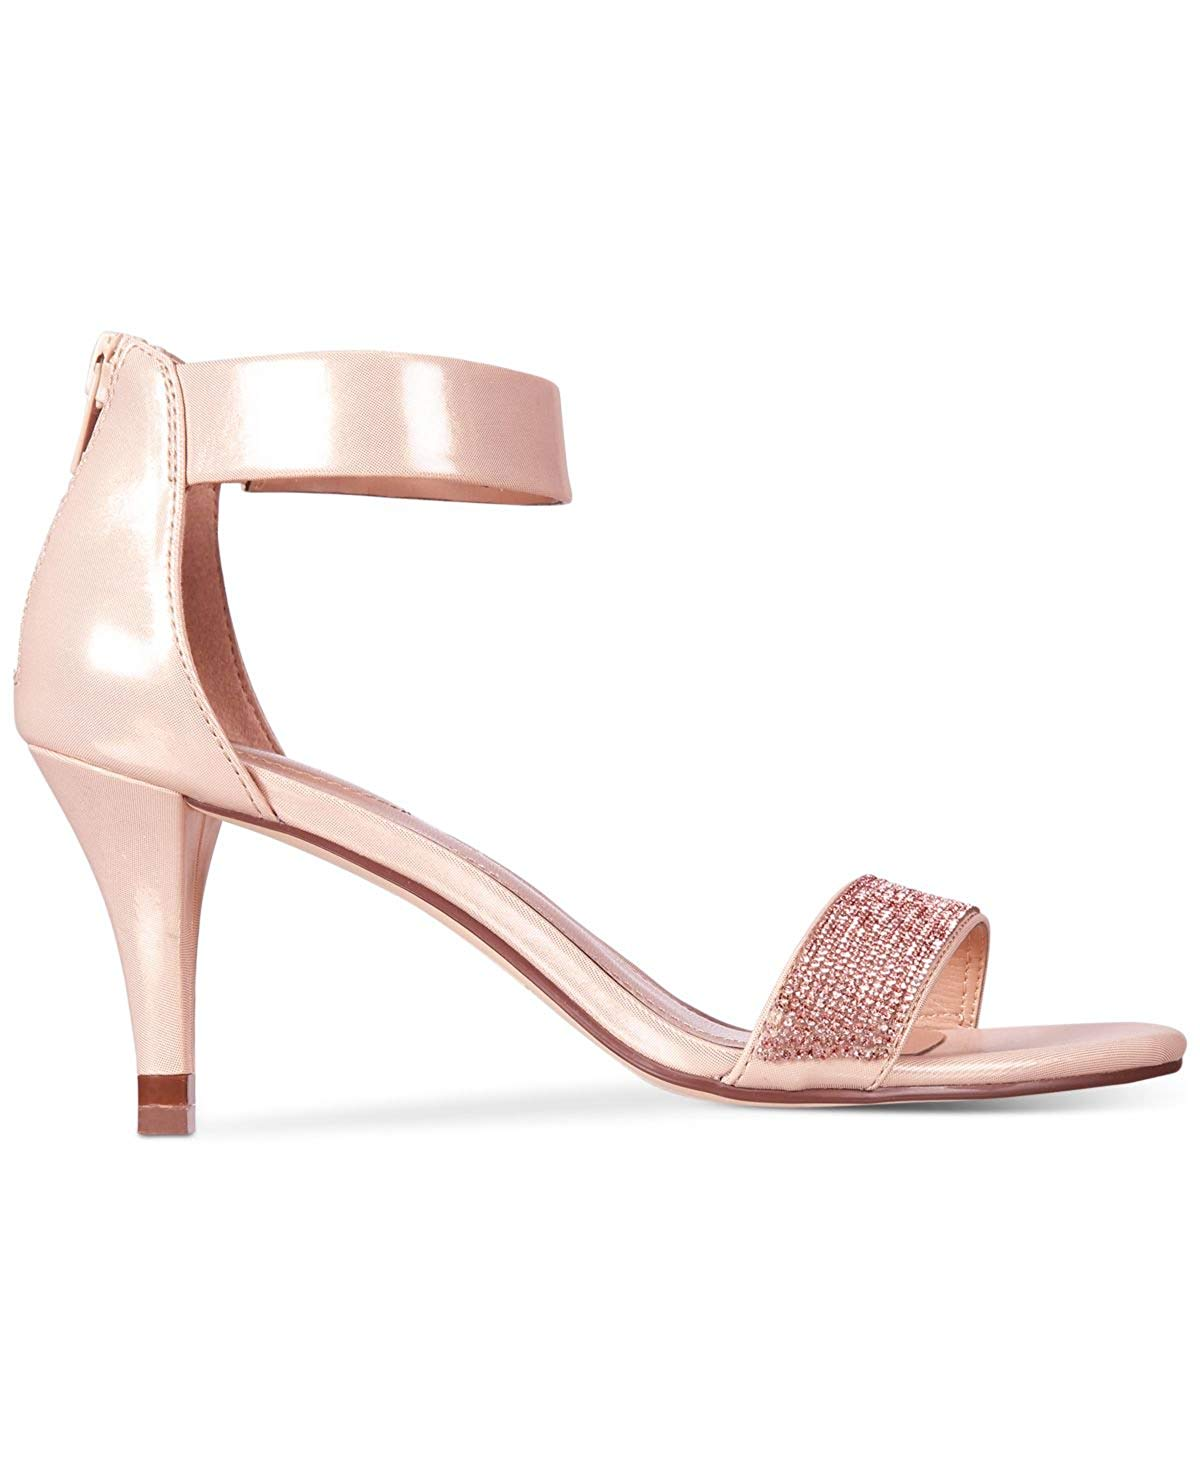 Style & Co. Phillys Damenschuhe Heeled Sandales Rose Rose Sandales Gold 6 US   4 UK XOl9 ... c55f4b